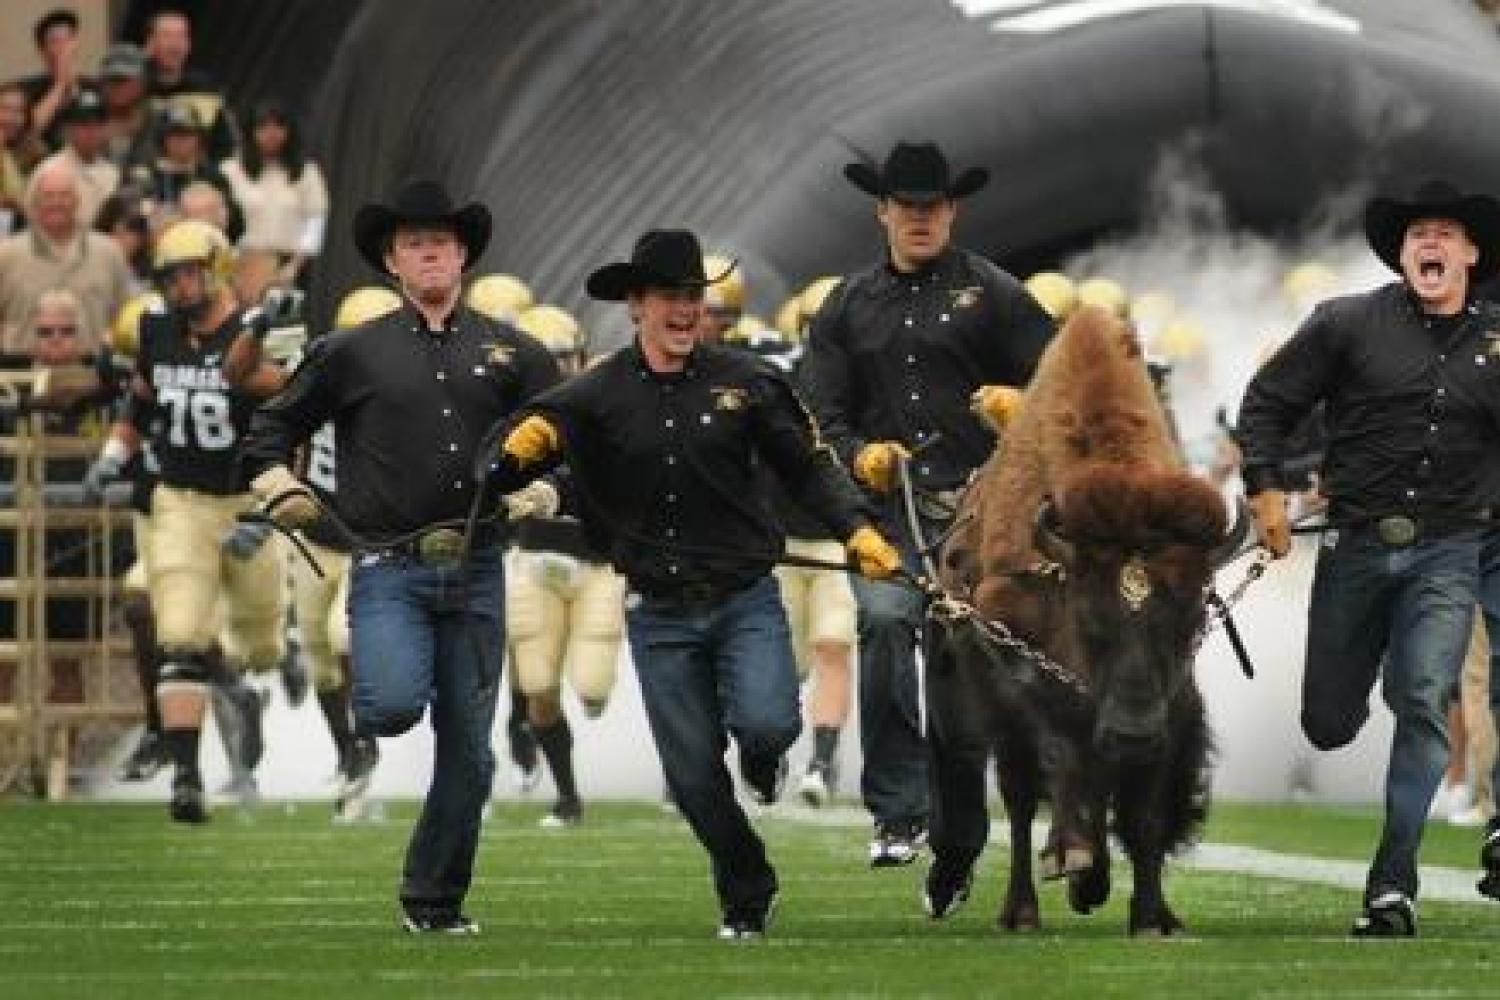 Running Ralphie is one of the most storied traditions in all of college athletics.